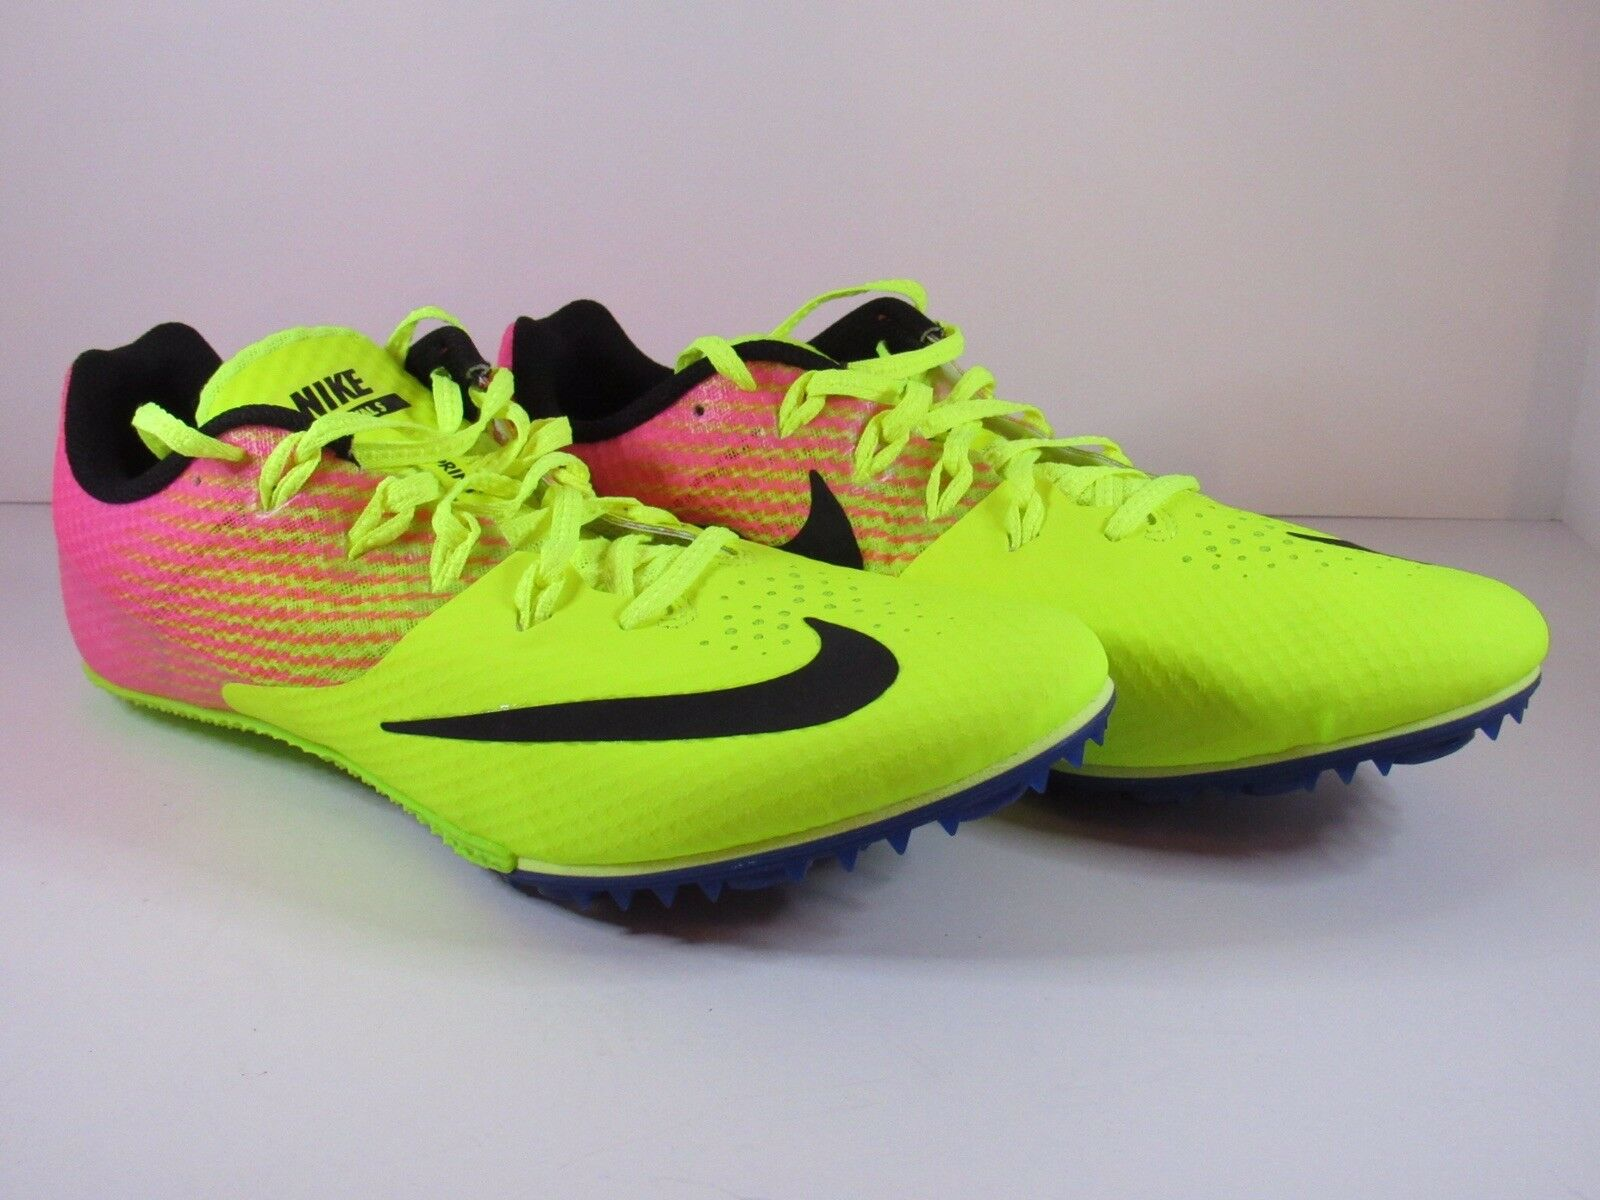 Special limited time Nike Zoom Rival S Track Running Spikes Volt Pink Men's Comfortable